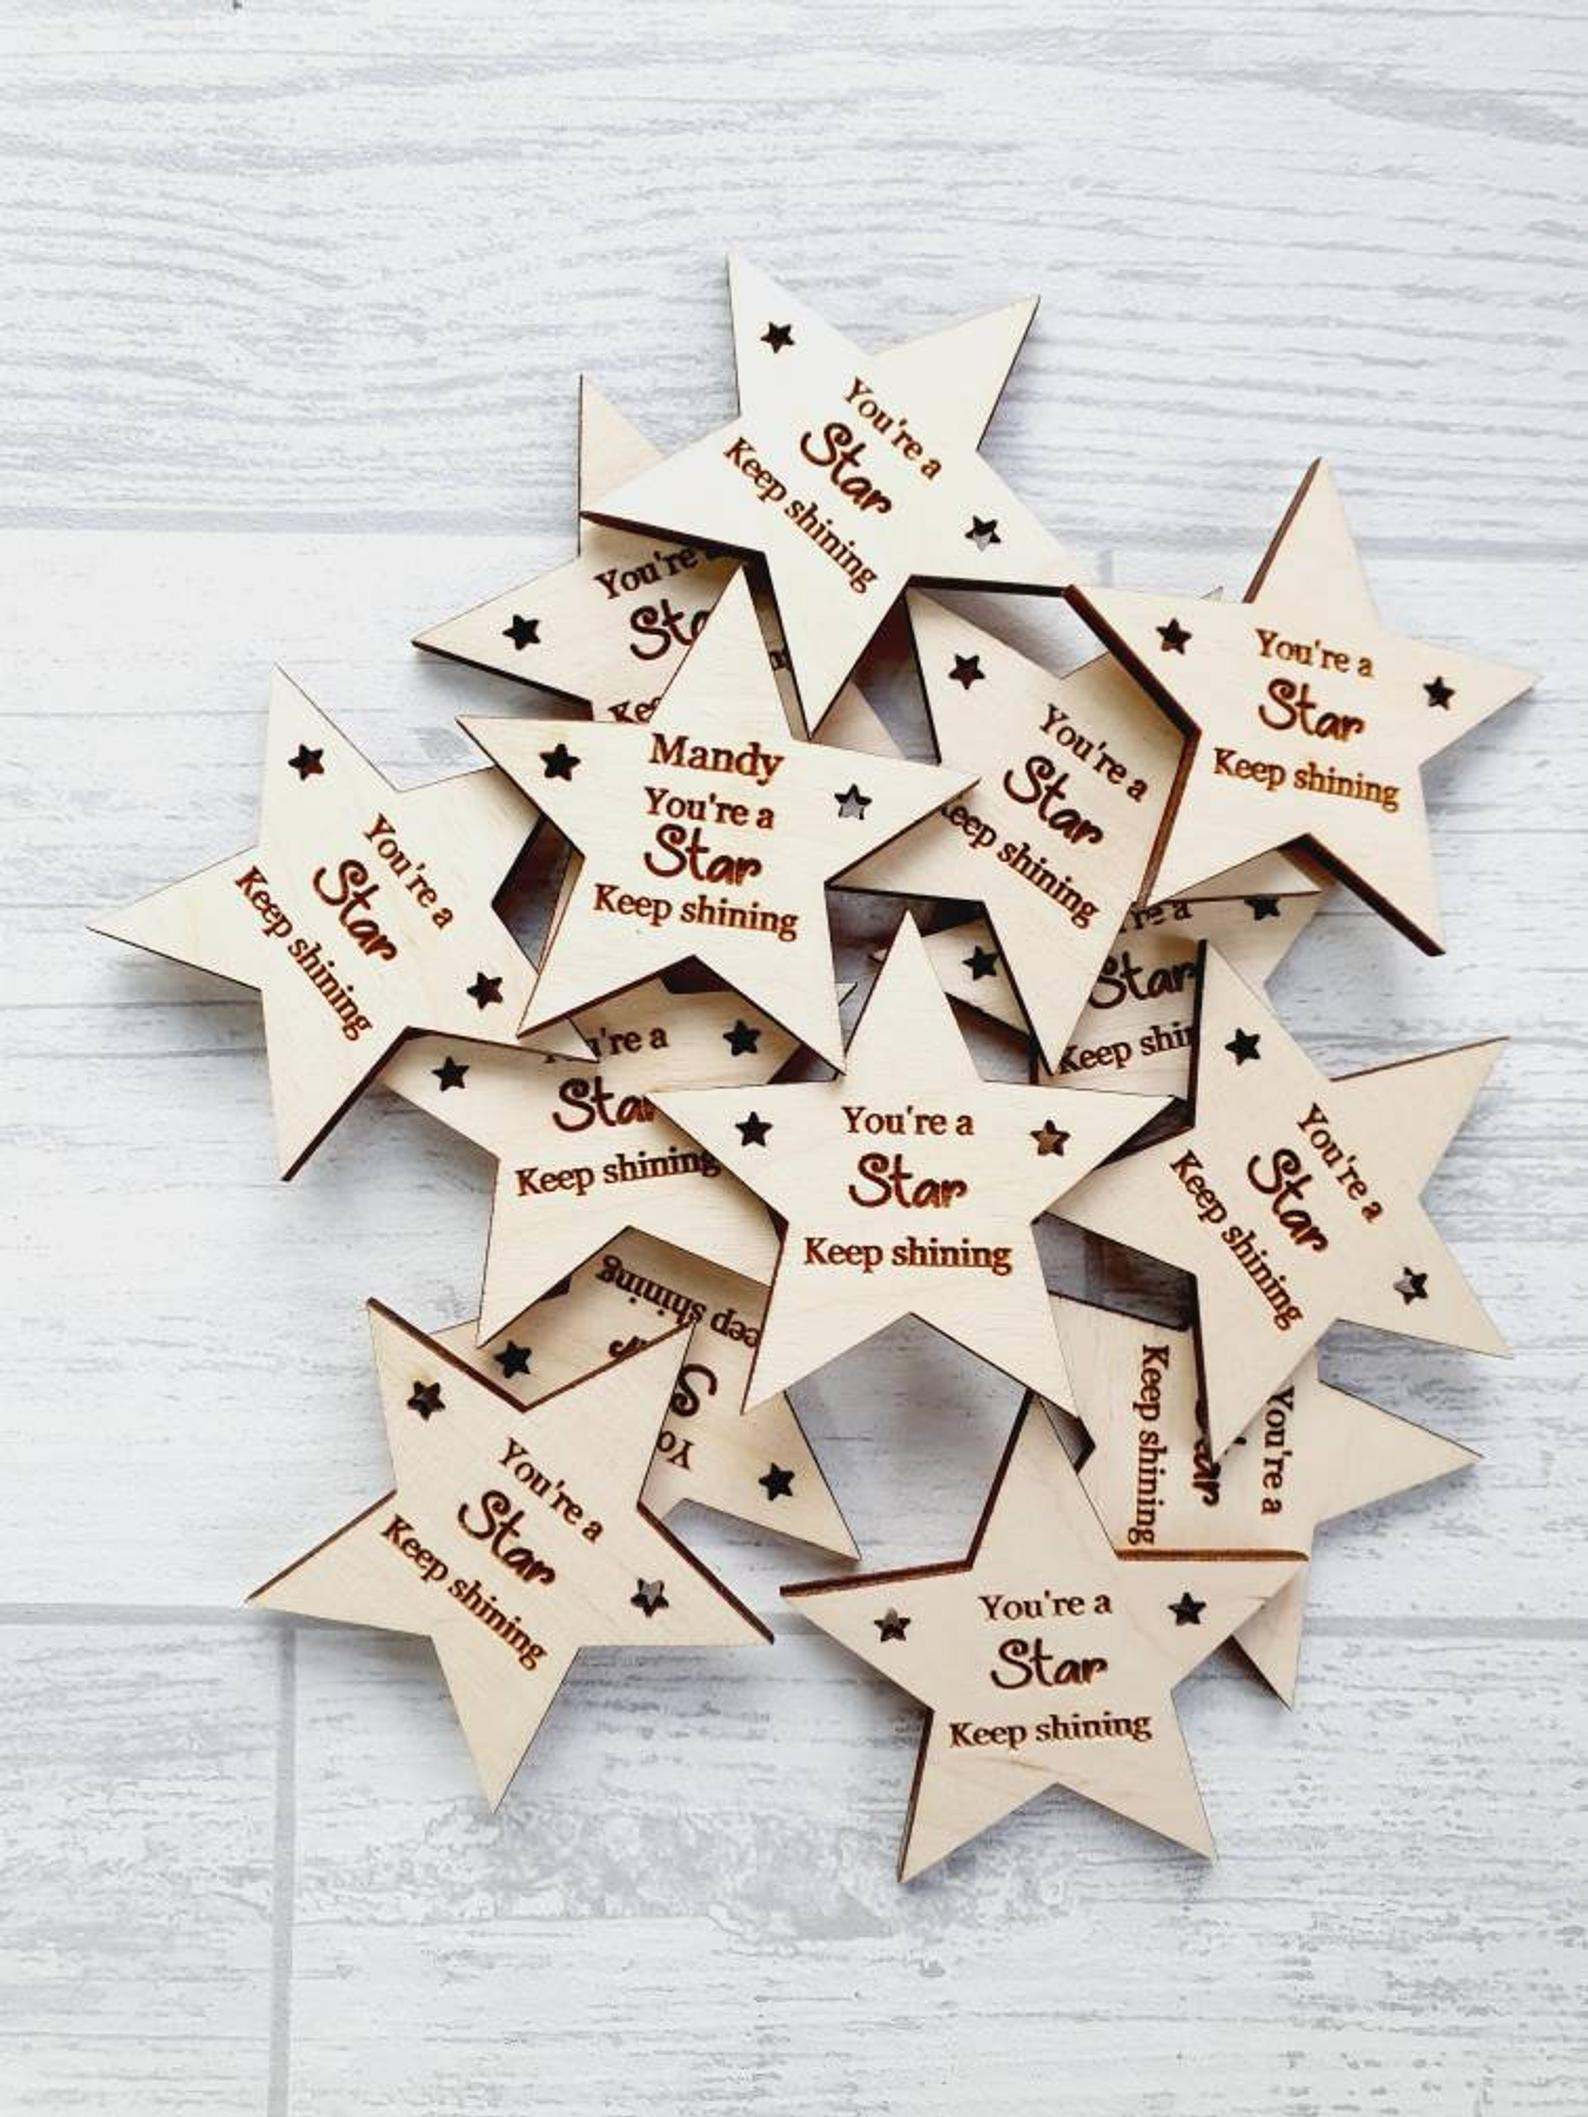 end-of-year-gifts-for-students-encouragement-stars